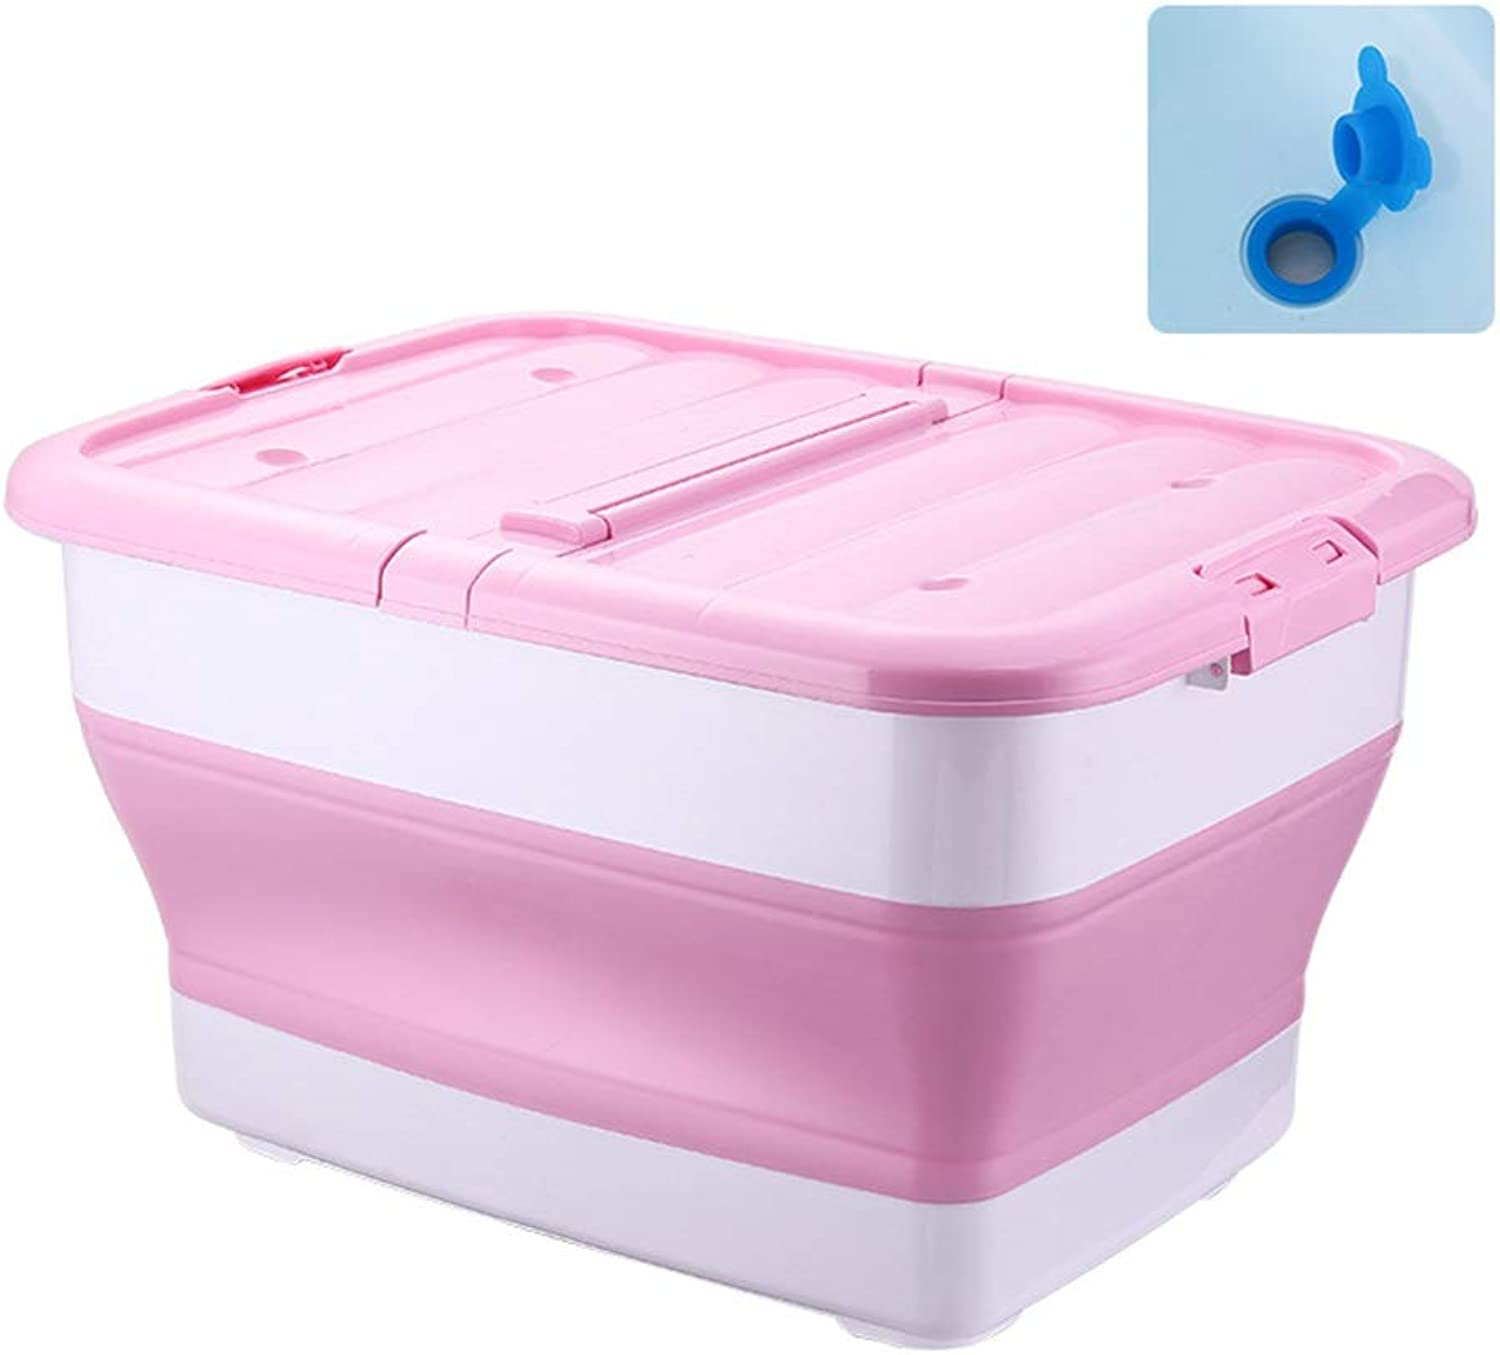 ZHANGQIANG Storage Basket Laundry Basket Plastic Large Storage Box with Lids (color   Pink flip+Water Hole, Size   A)